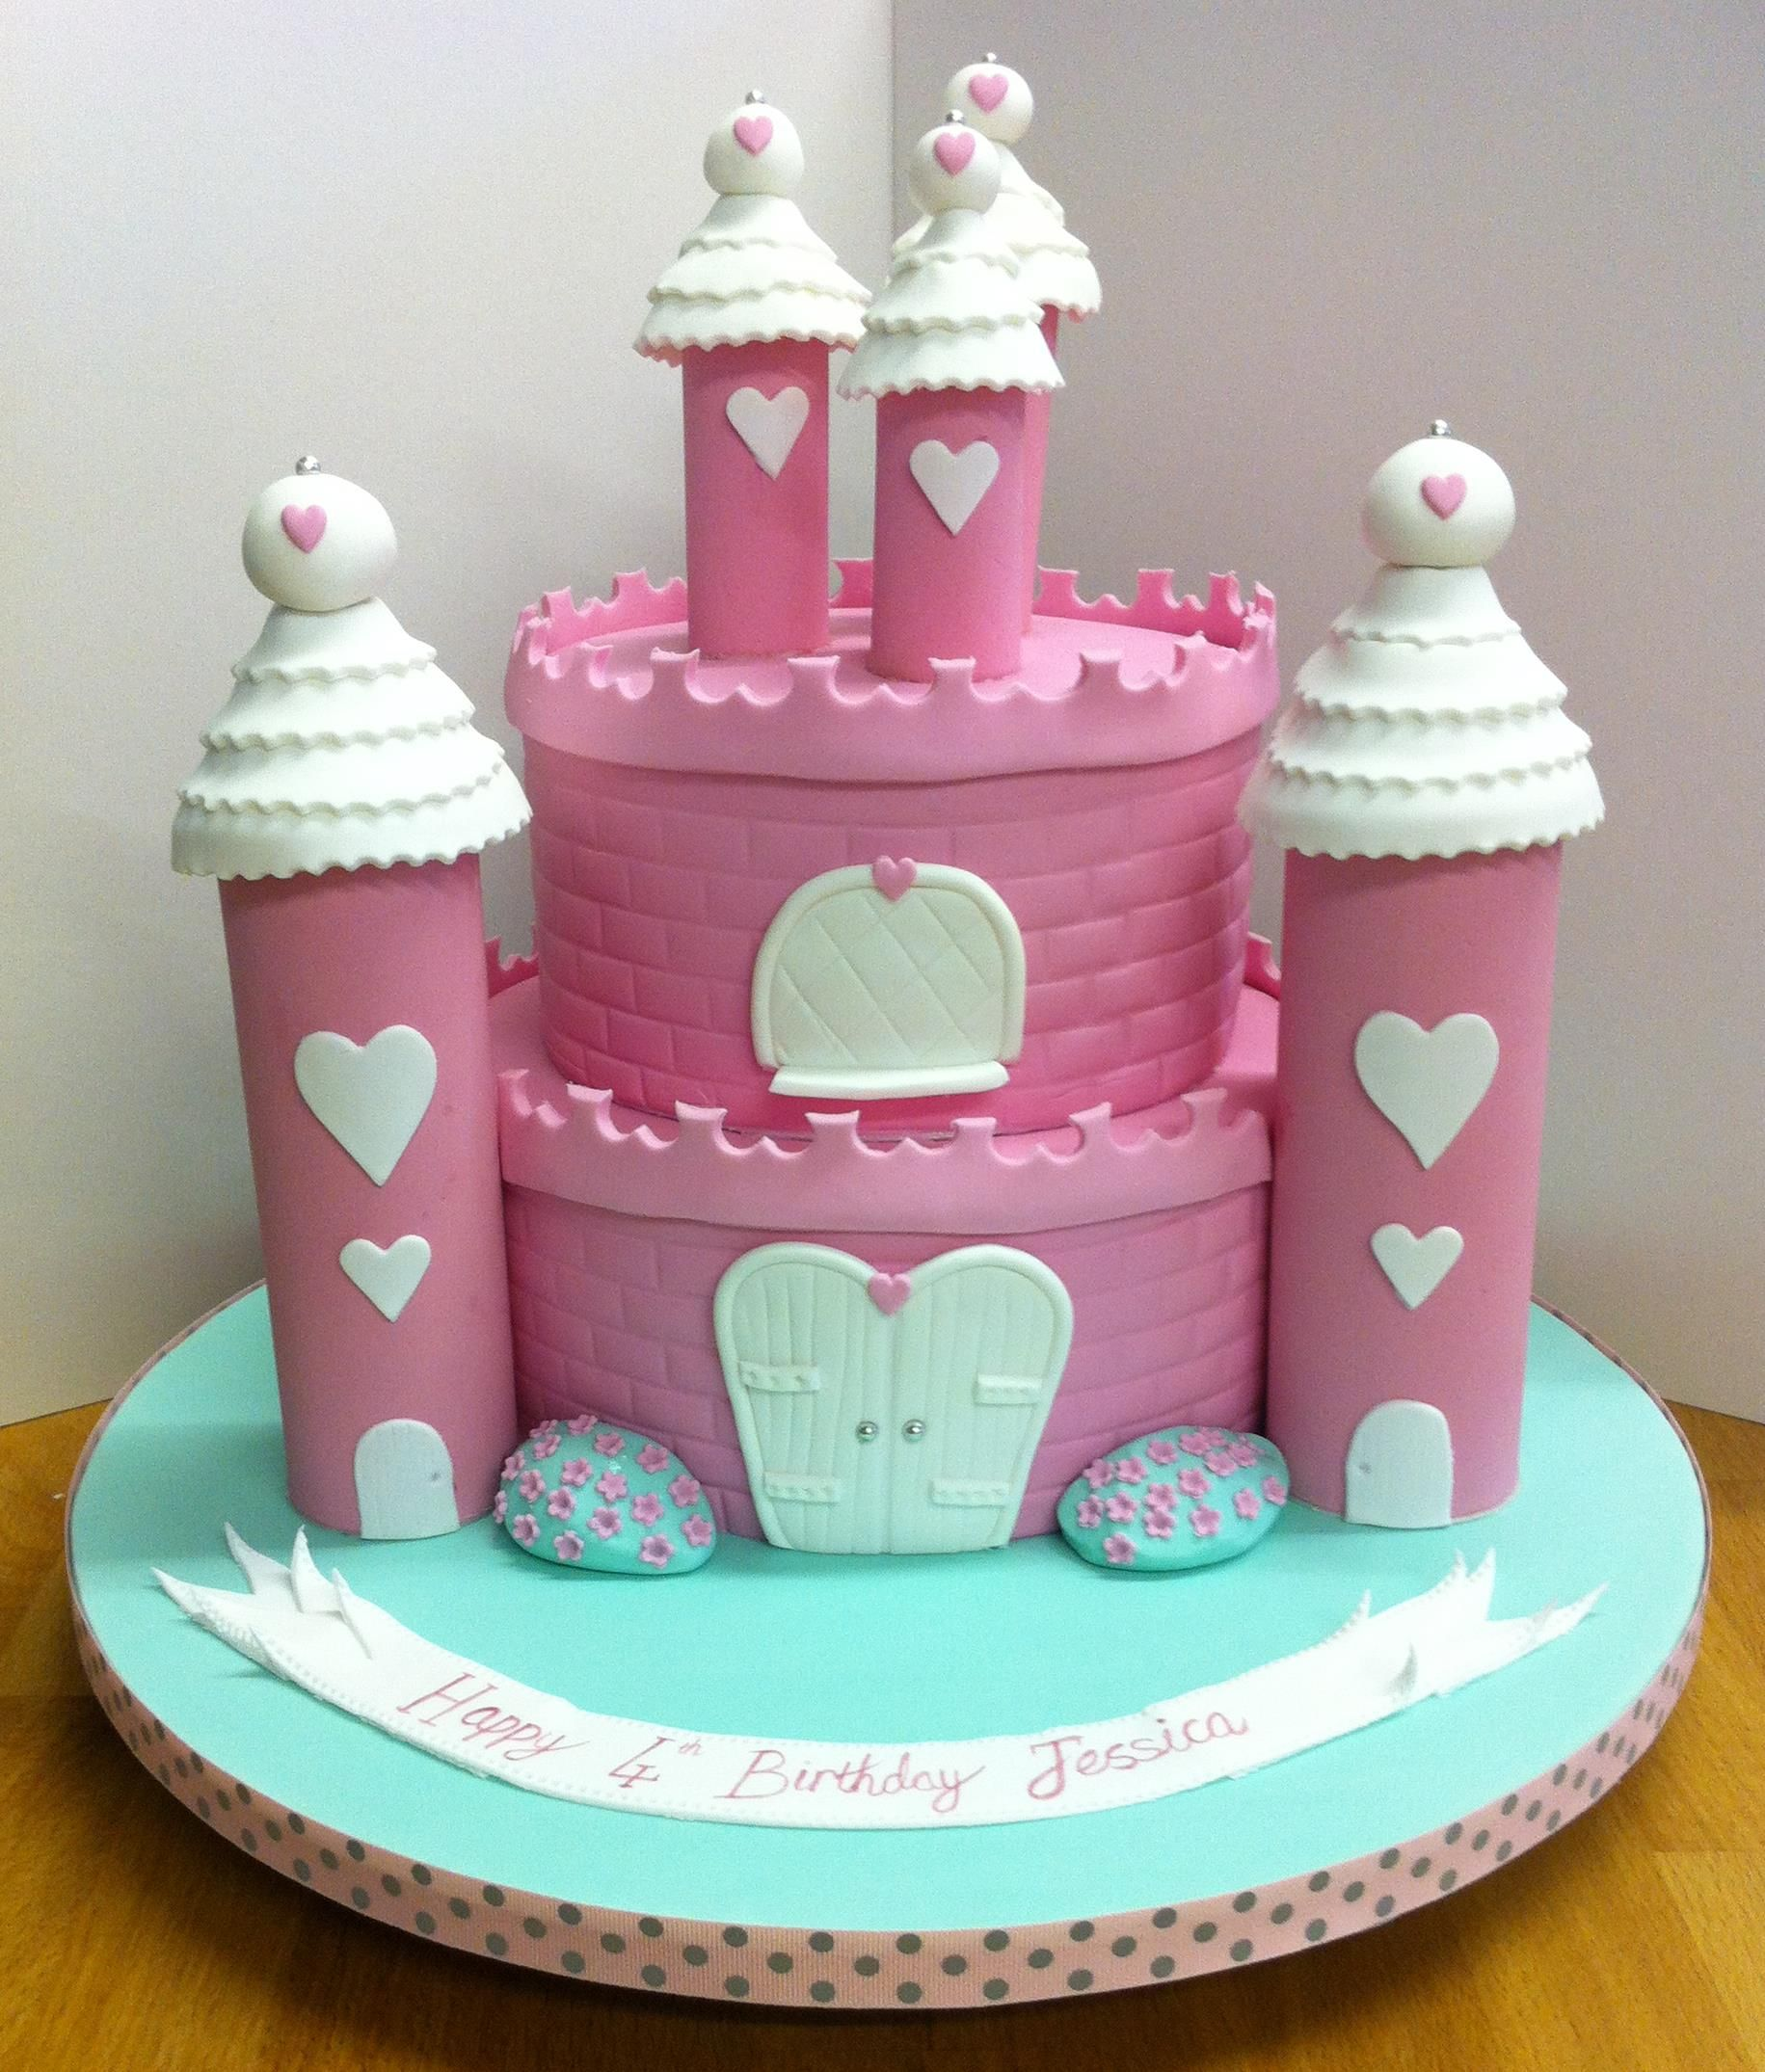 fun pink castle cake with a heart theme